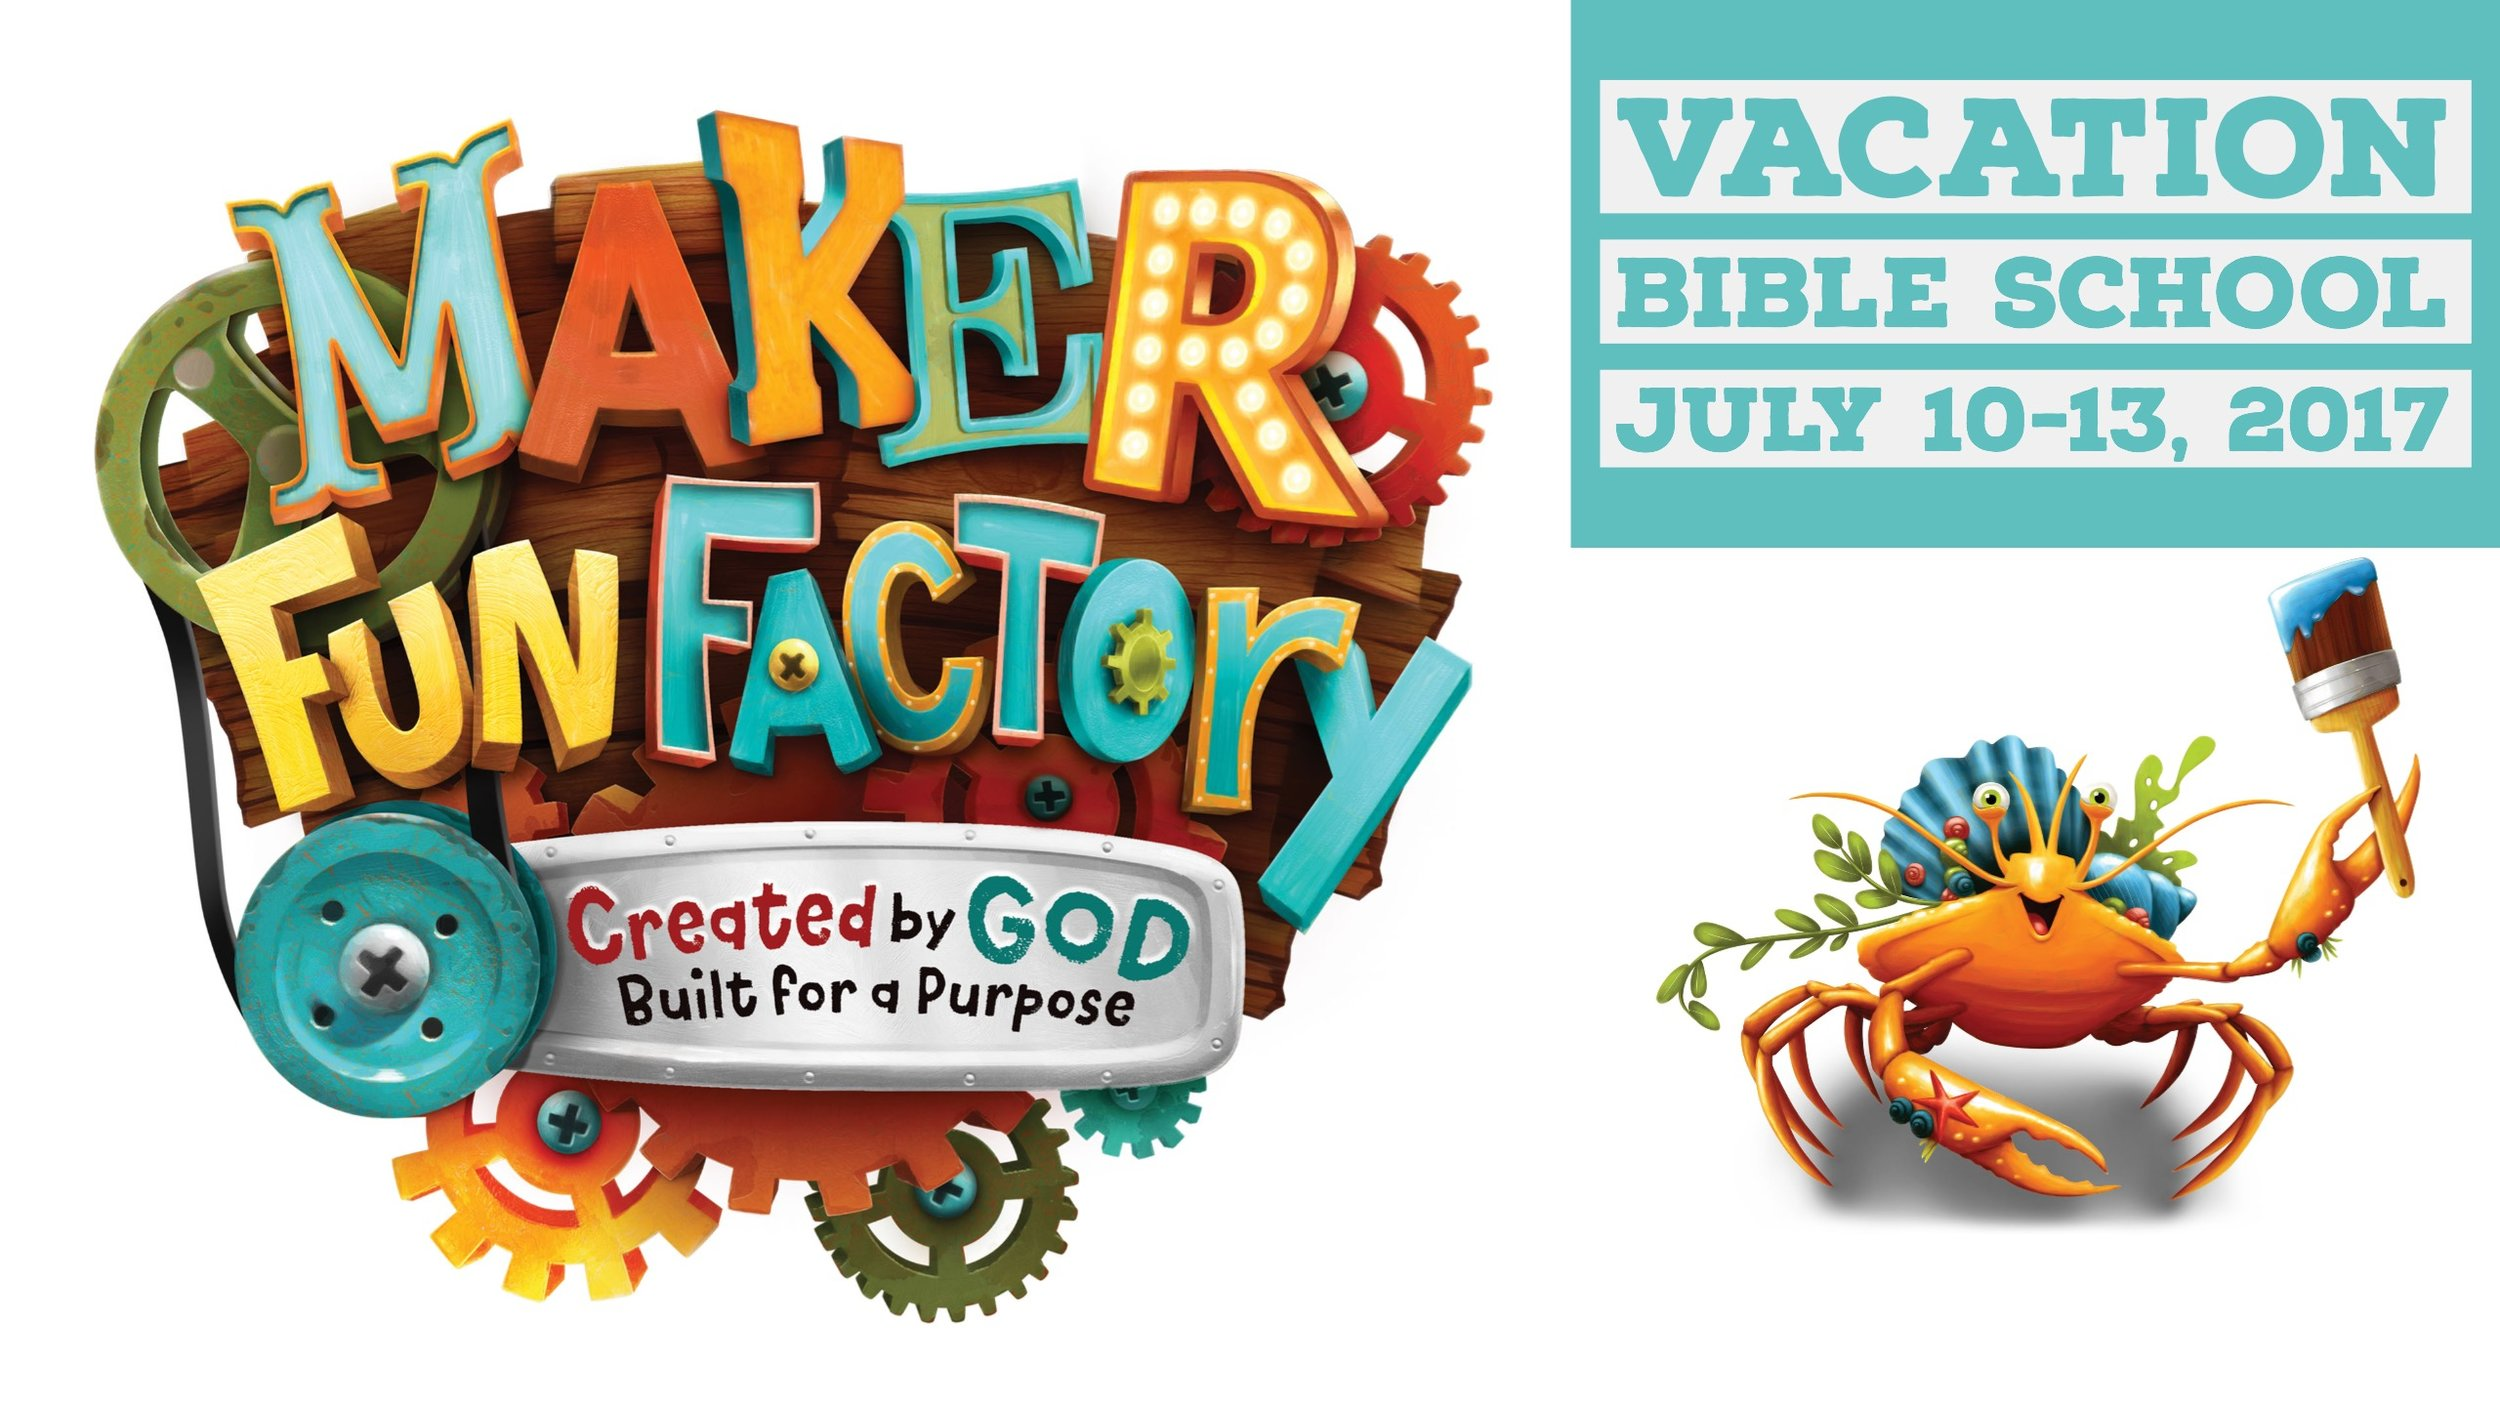 Vacation Bible School.